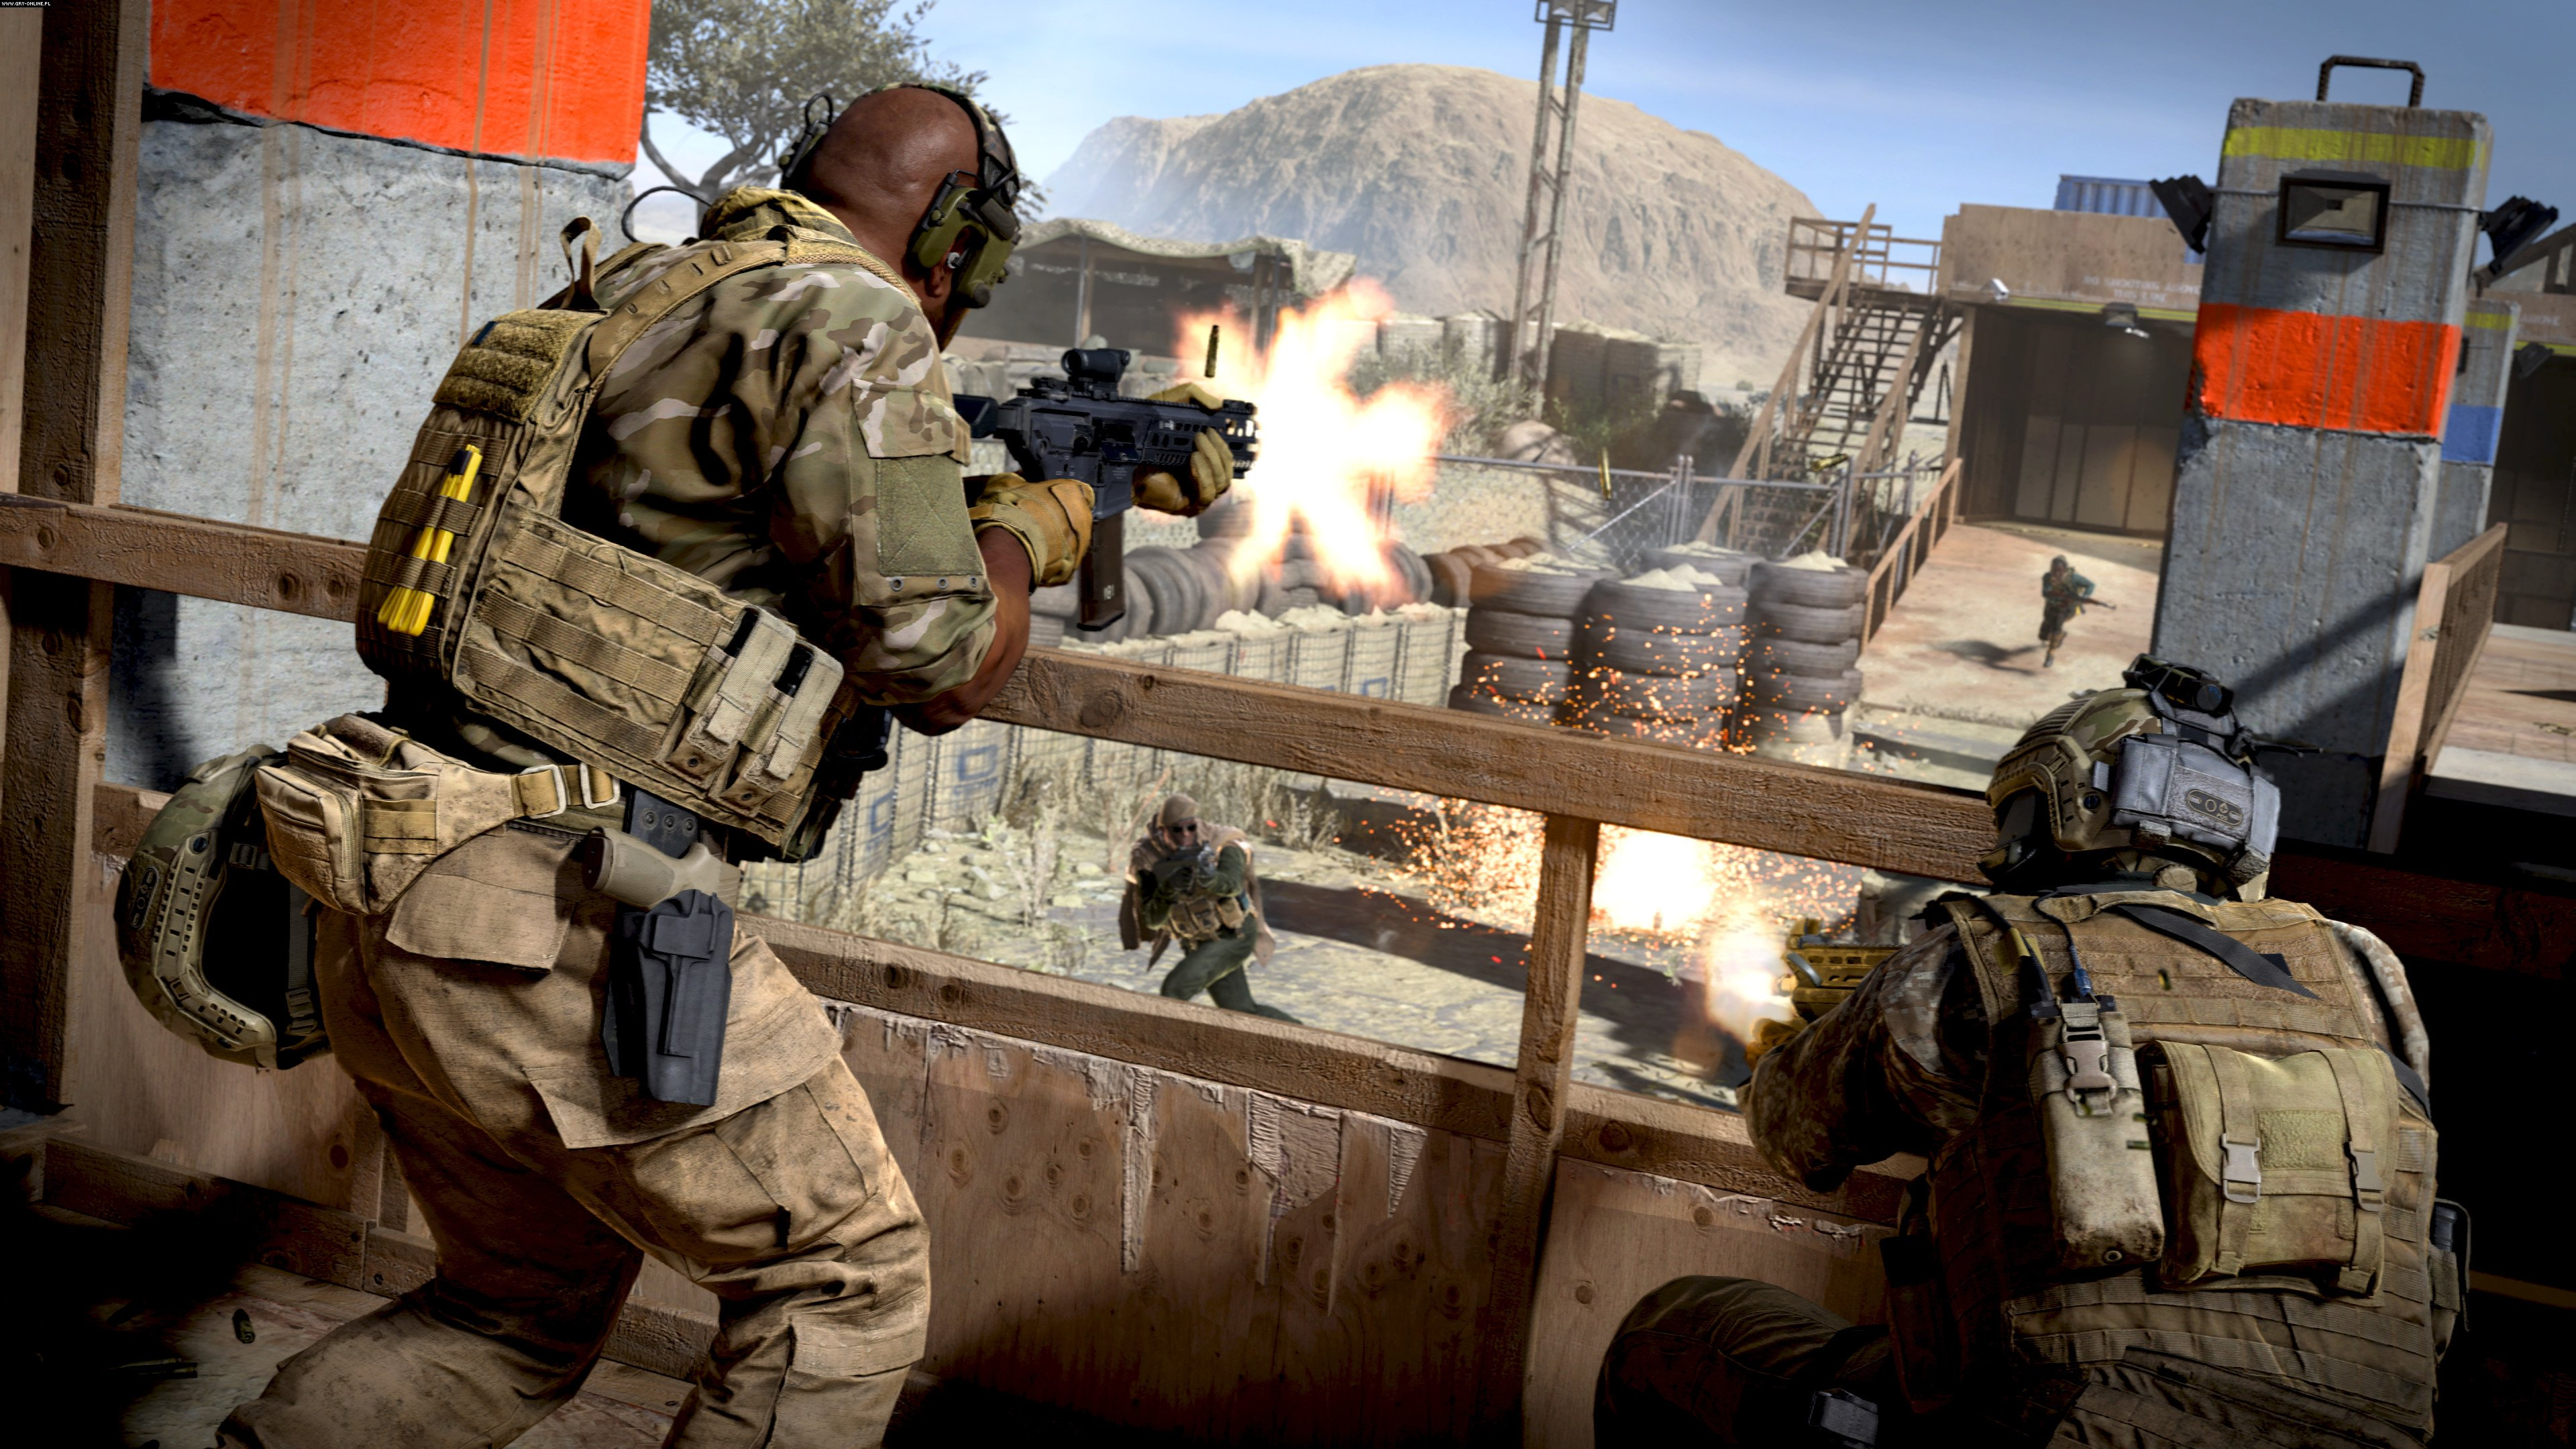 Call of Duty: Modern Warfare PC, PS4, XONE Games Image 13/35, Infinity Ward, Activision Blizzard